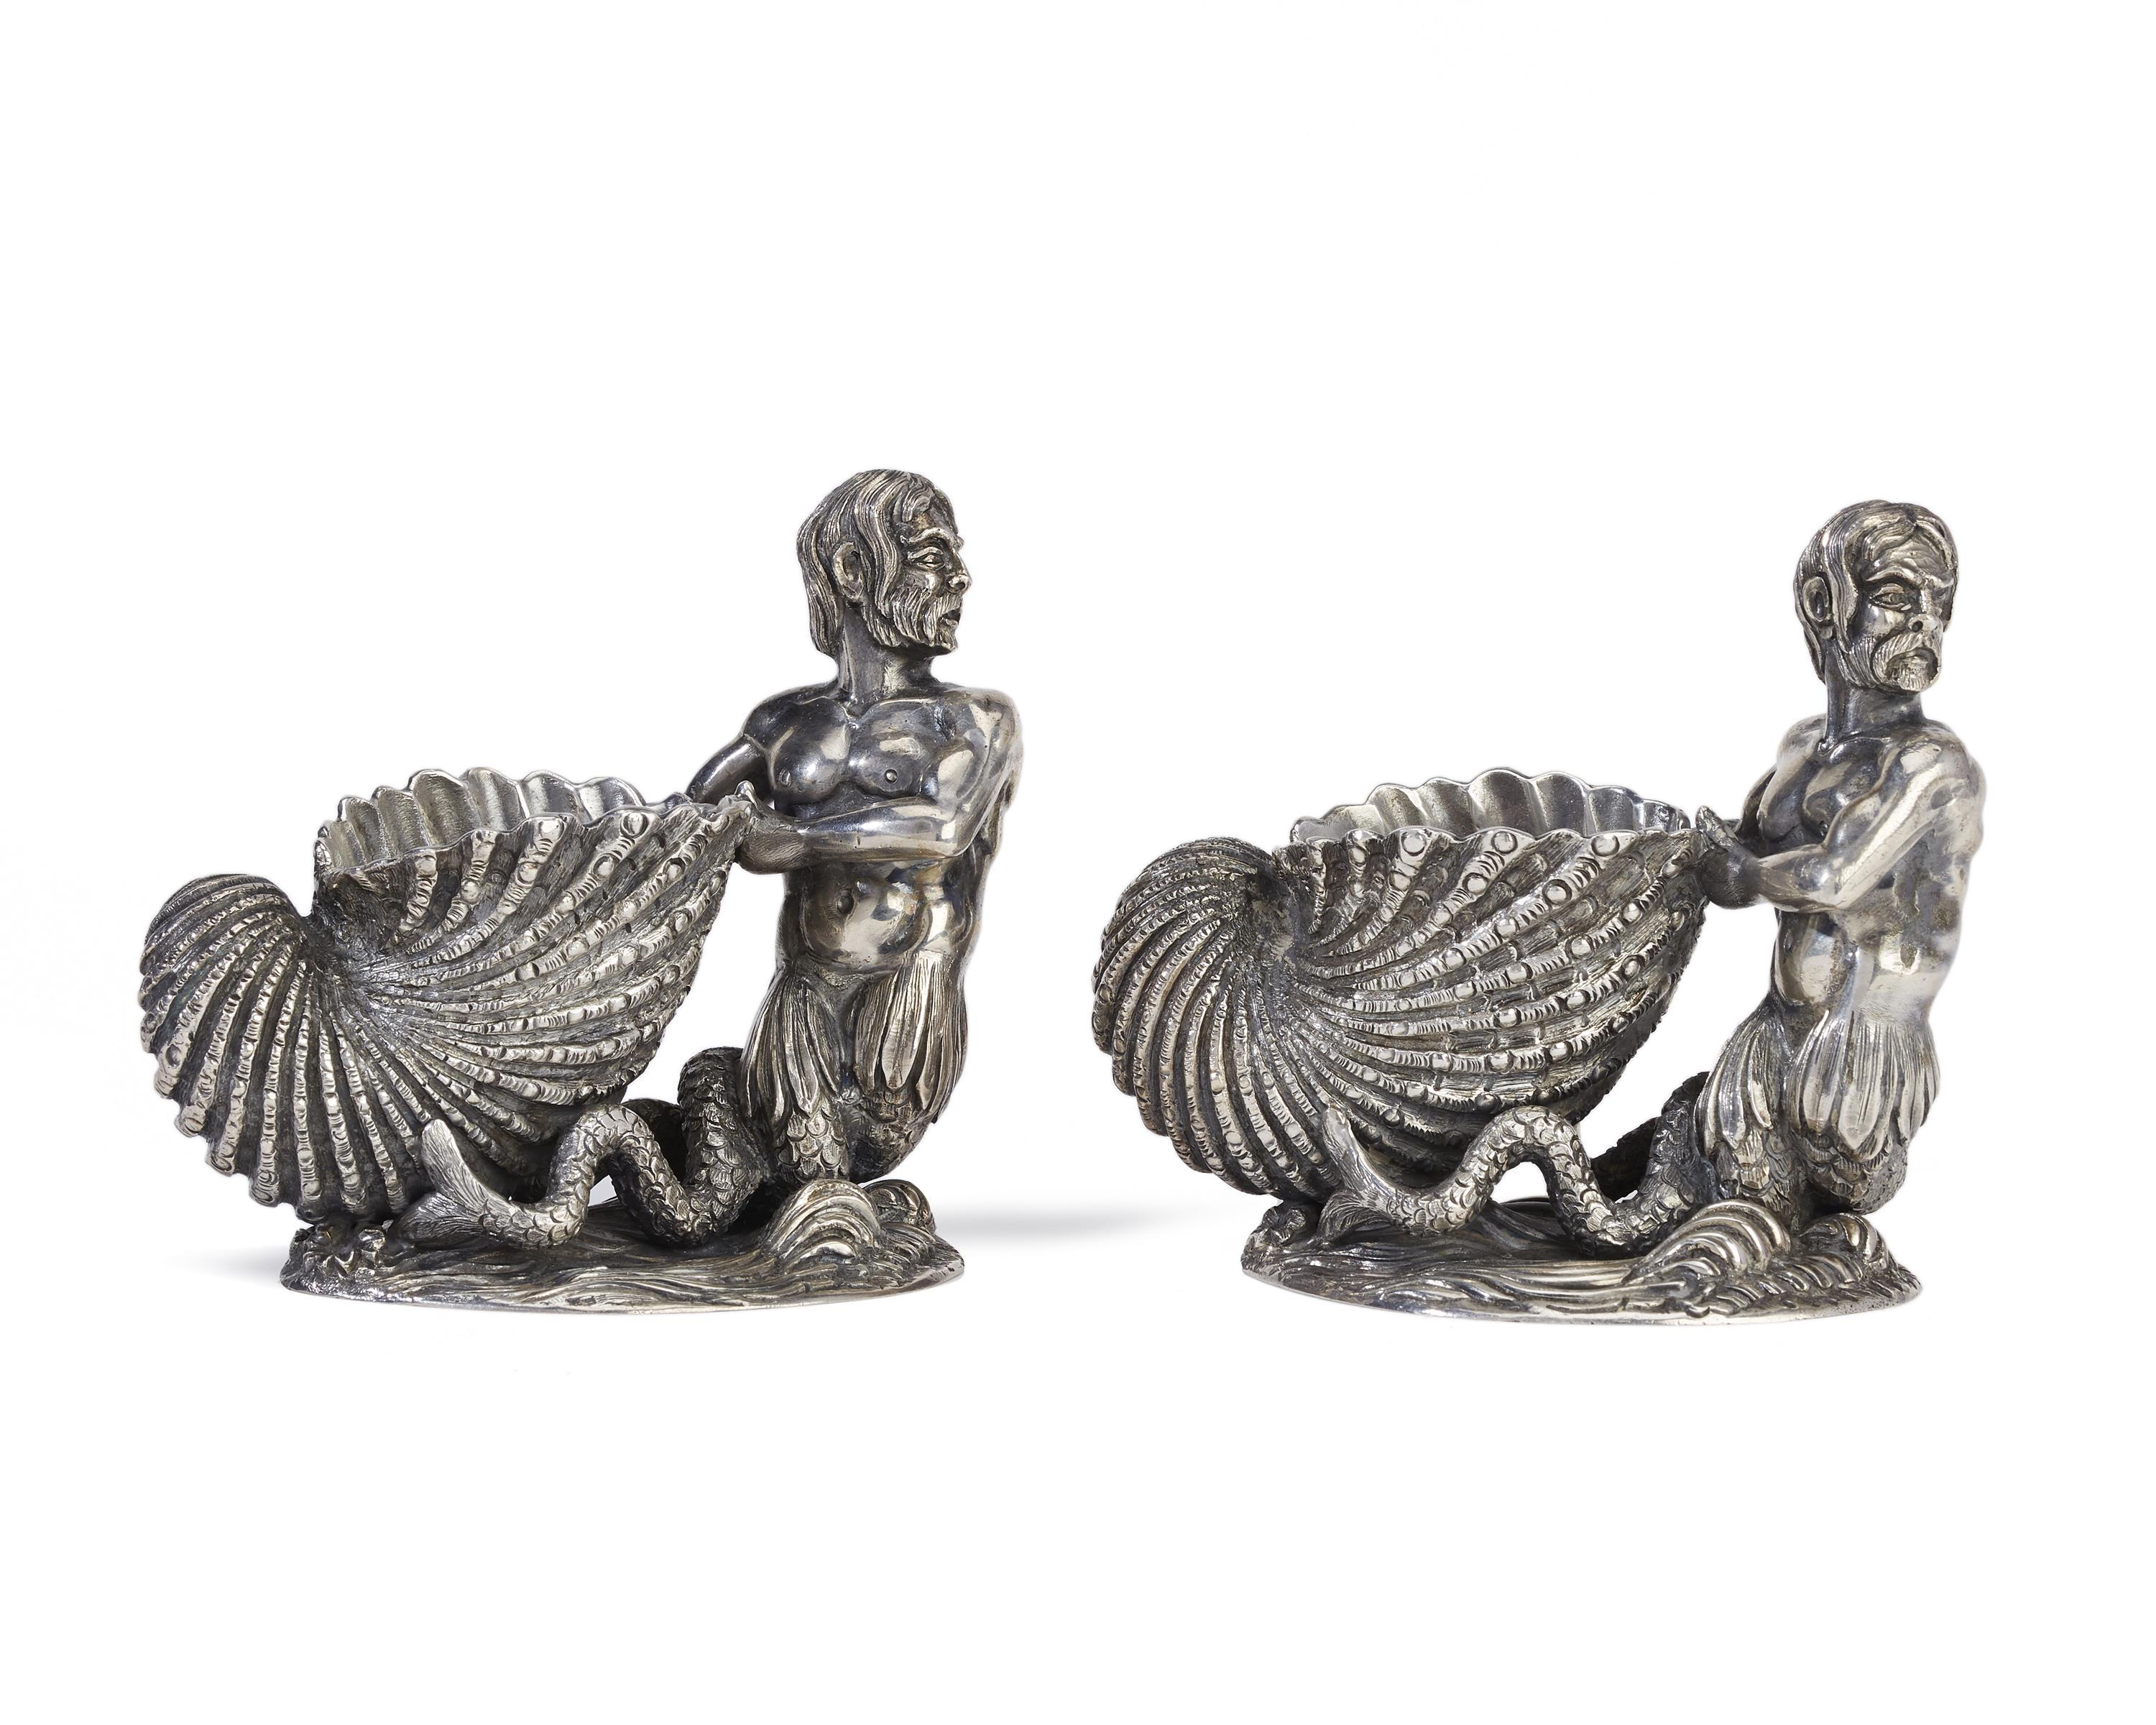 A pair of Buccelatti figural salt cellars